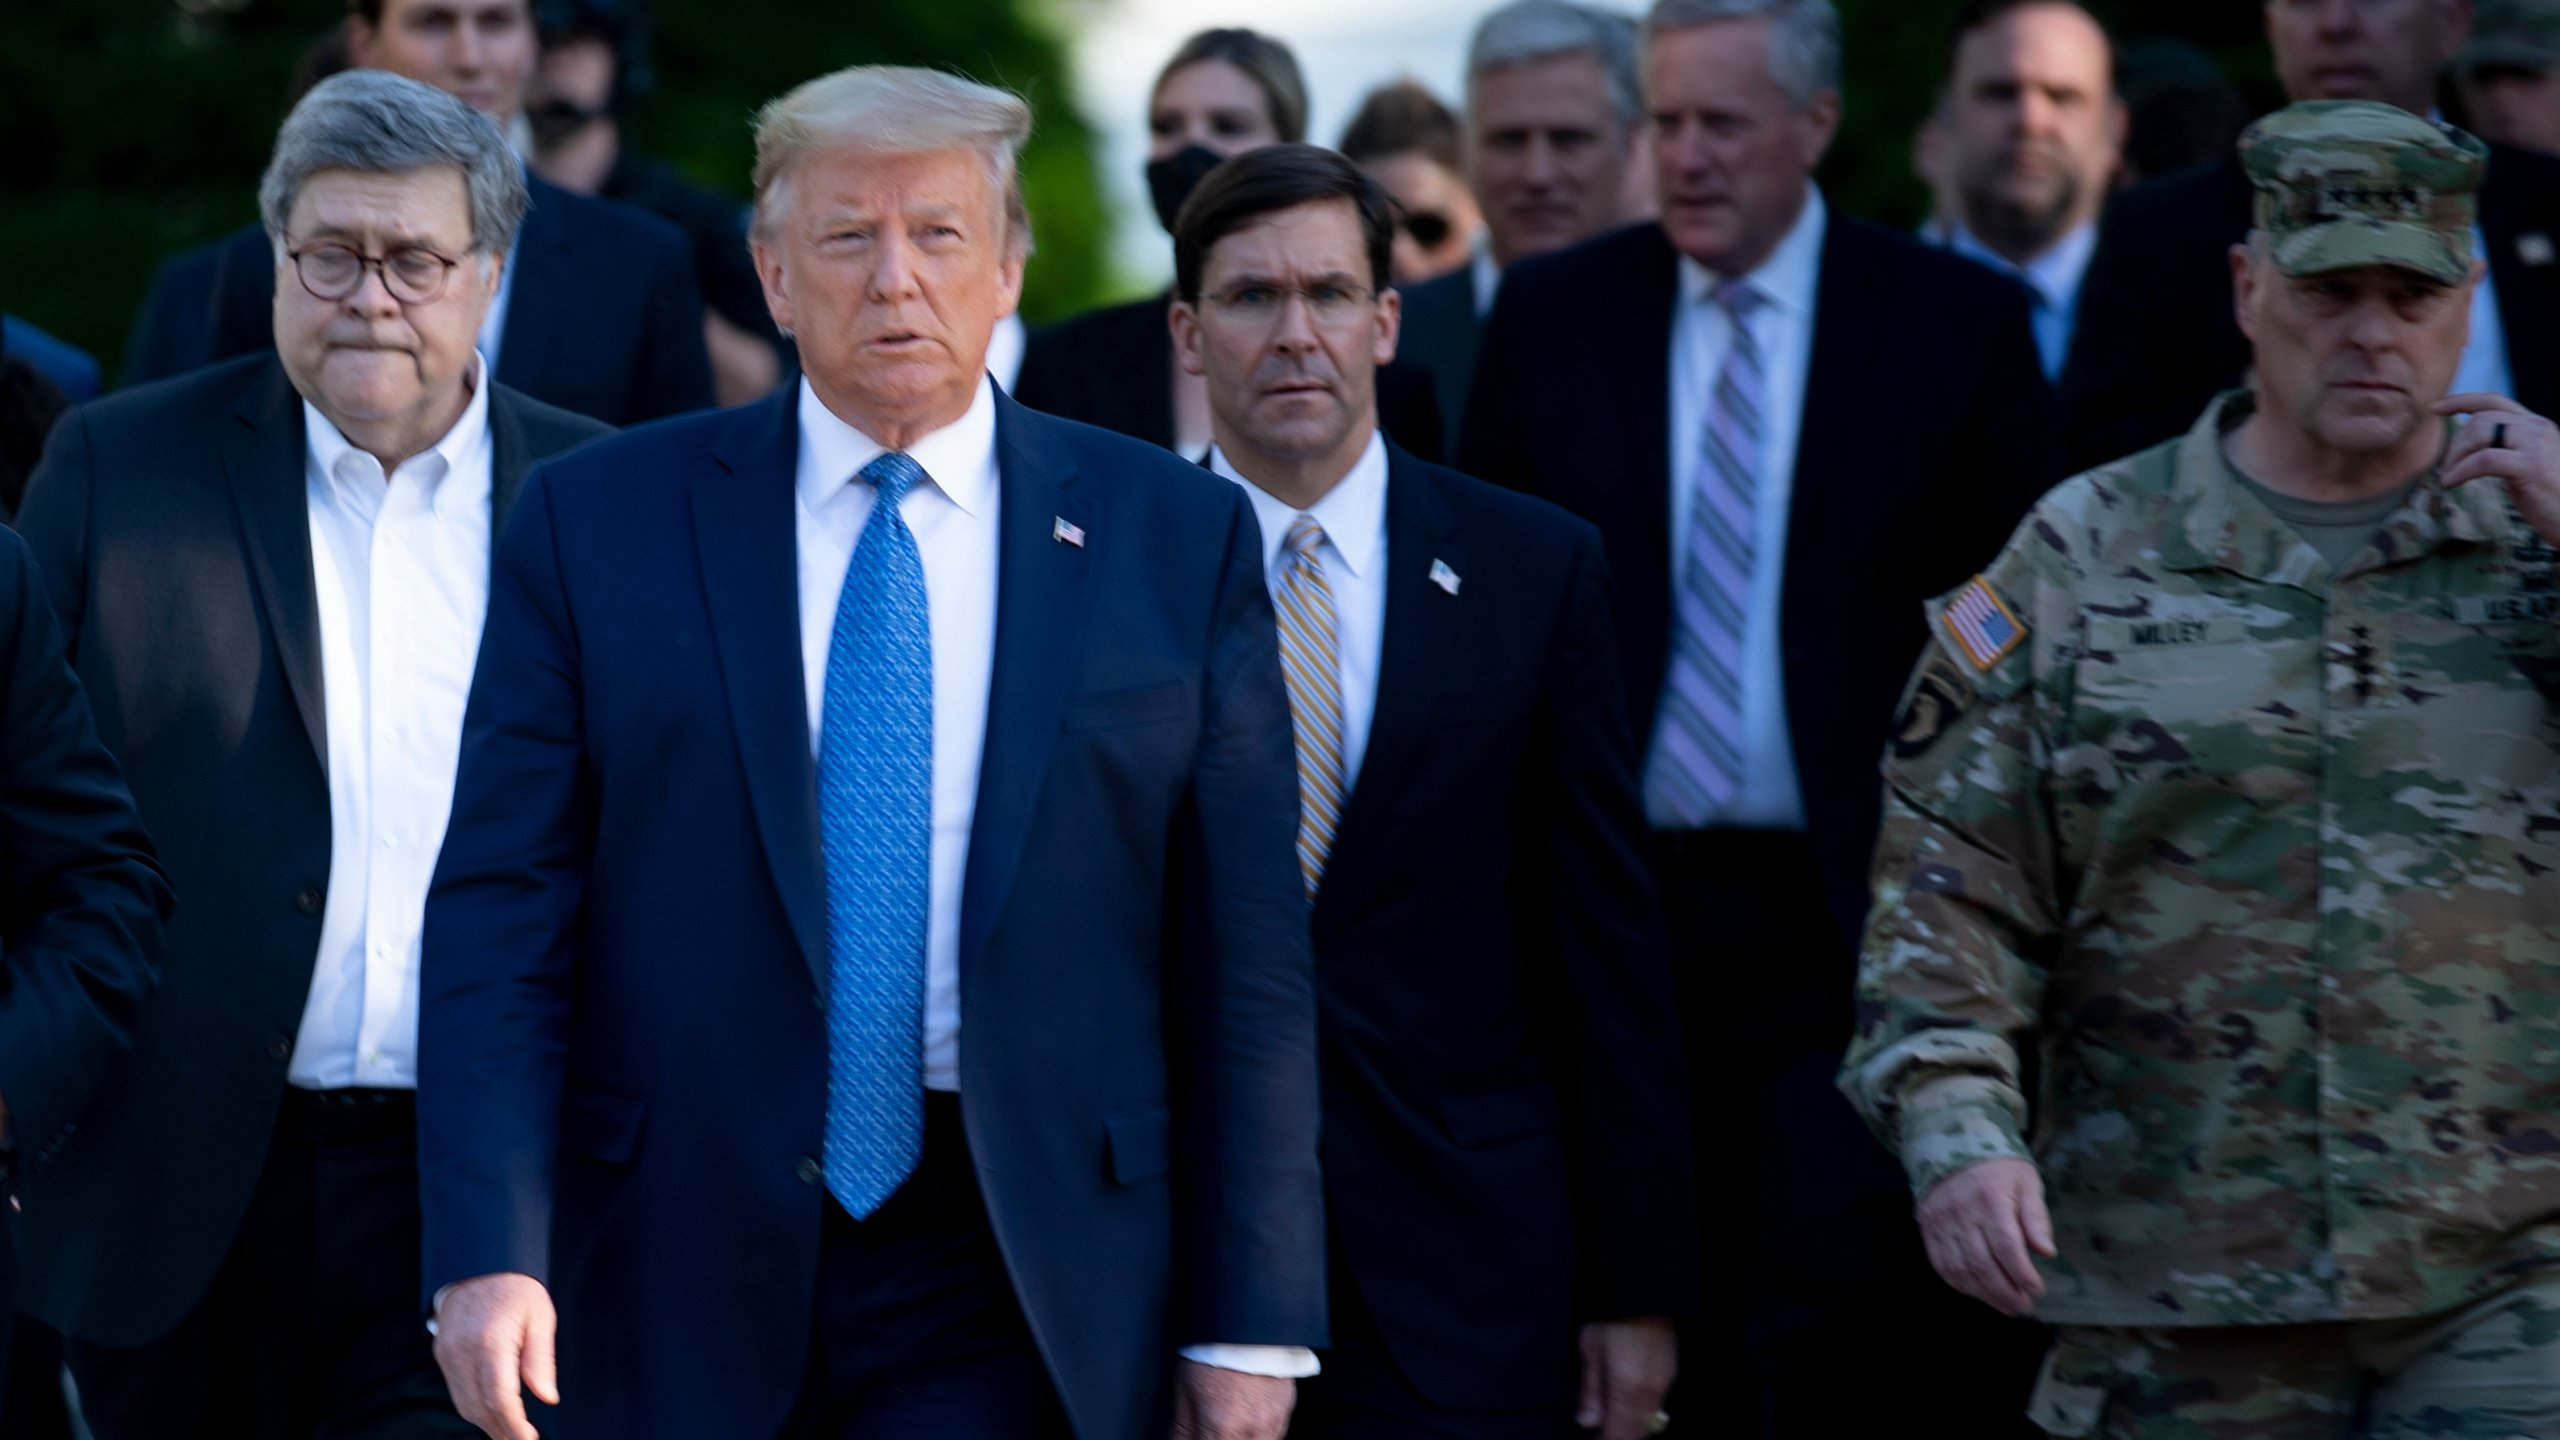 President Donald Trump walks with US Attorney General William Barr (L), US Secretary of Defense Mark T. Esper (C), Chairman of the Joint Chiefs of Staff Mark A. Milley (R), and others from the White House to visit St. John's Church after the area was cleared of people protesting the death of George Floyd June 1, 2020, in Washington, D.C. (BRENDAN SMIALOWSKI/AFP via Getty Images)